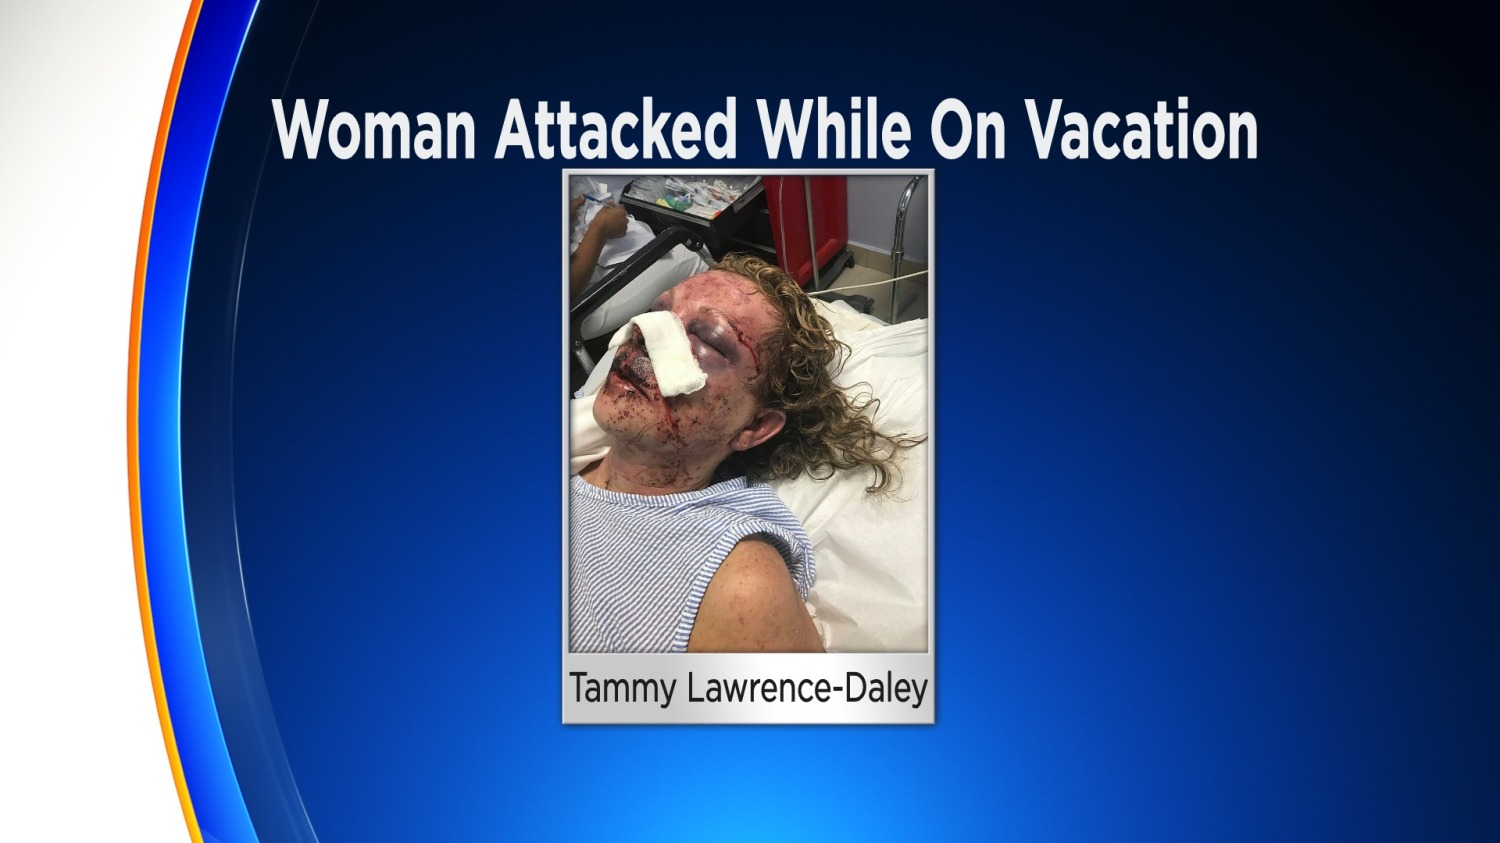 Dominican Republic Resort Where Delaware Mother Claims She Was Attacked Temporarily Closing Due To Low Occupancy